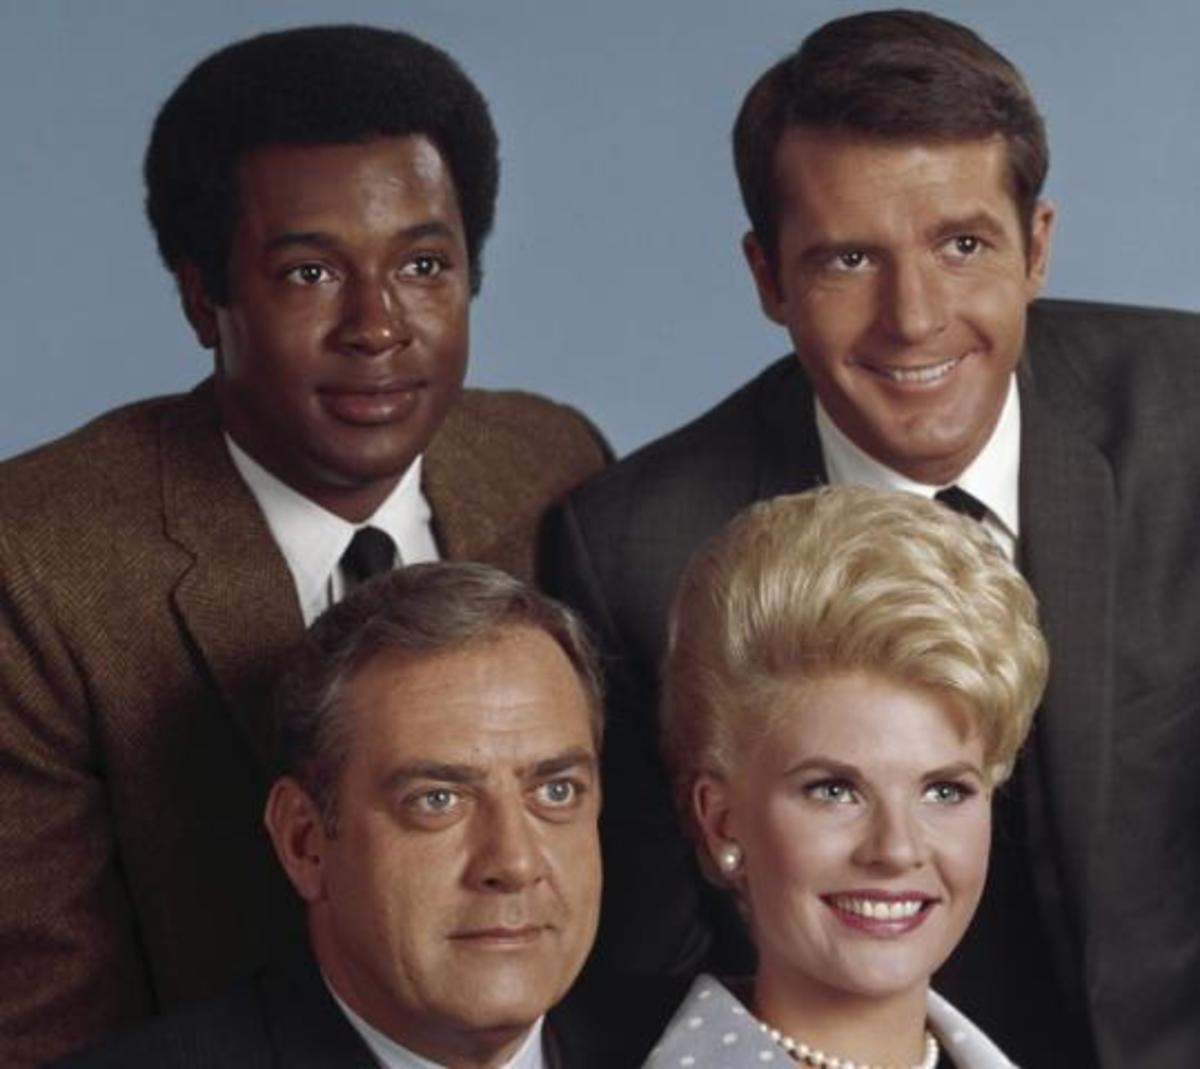 Don Mitchell, as Mark Sanger, seen here with the cast of Ironside.